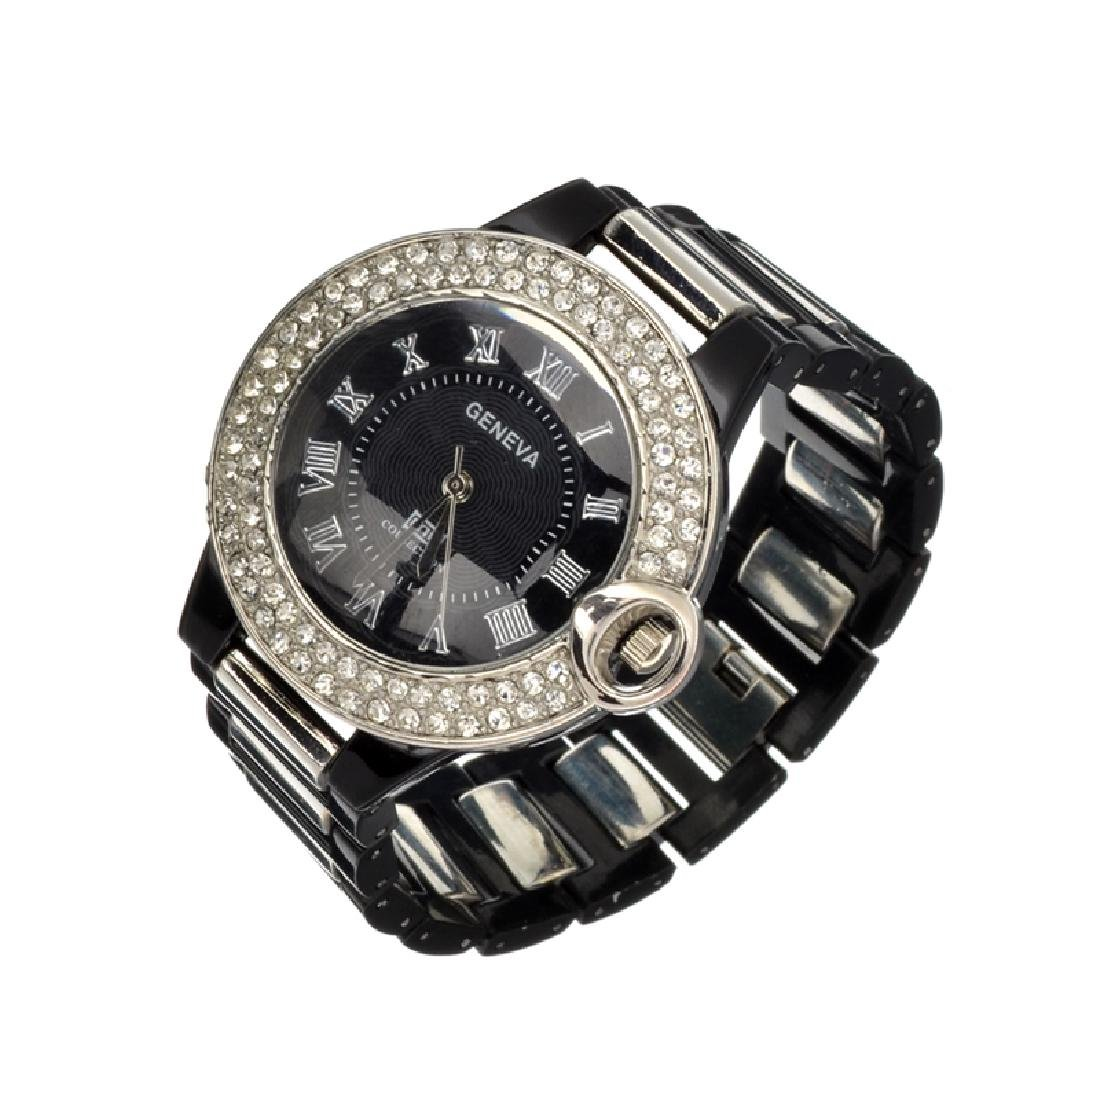 New Women's Geneva, MN Collection, Stainless Steel